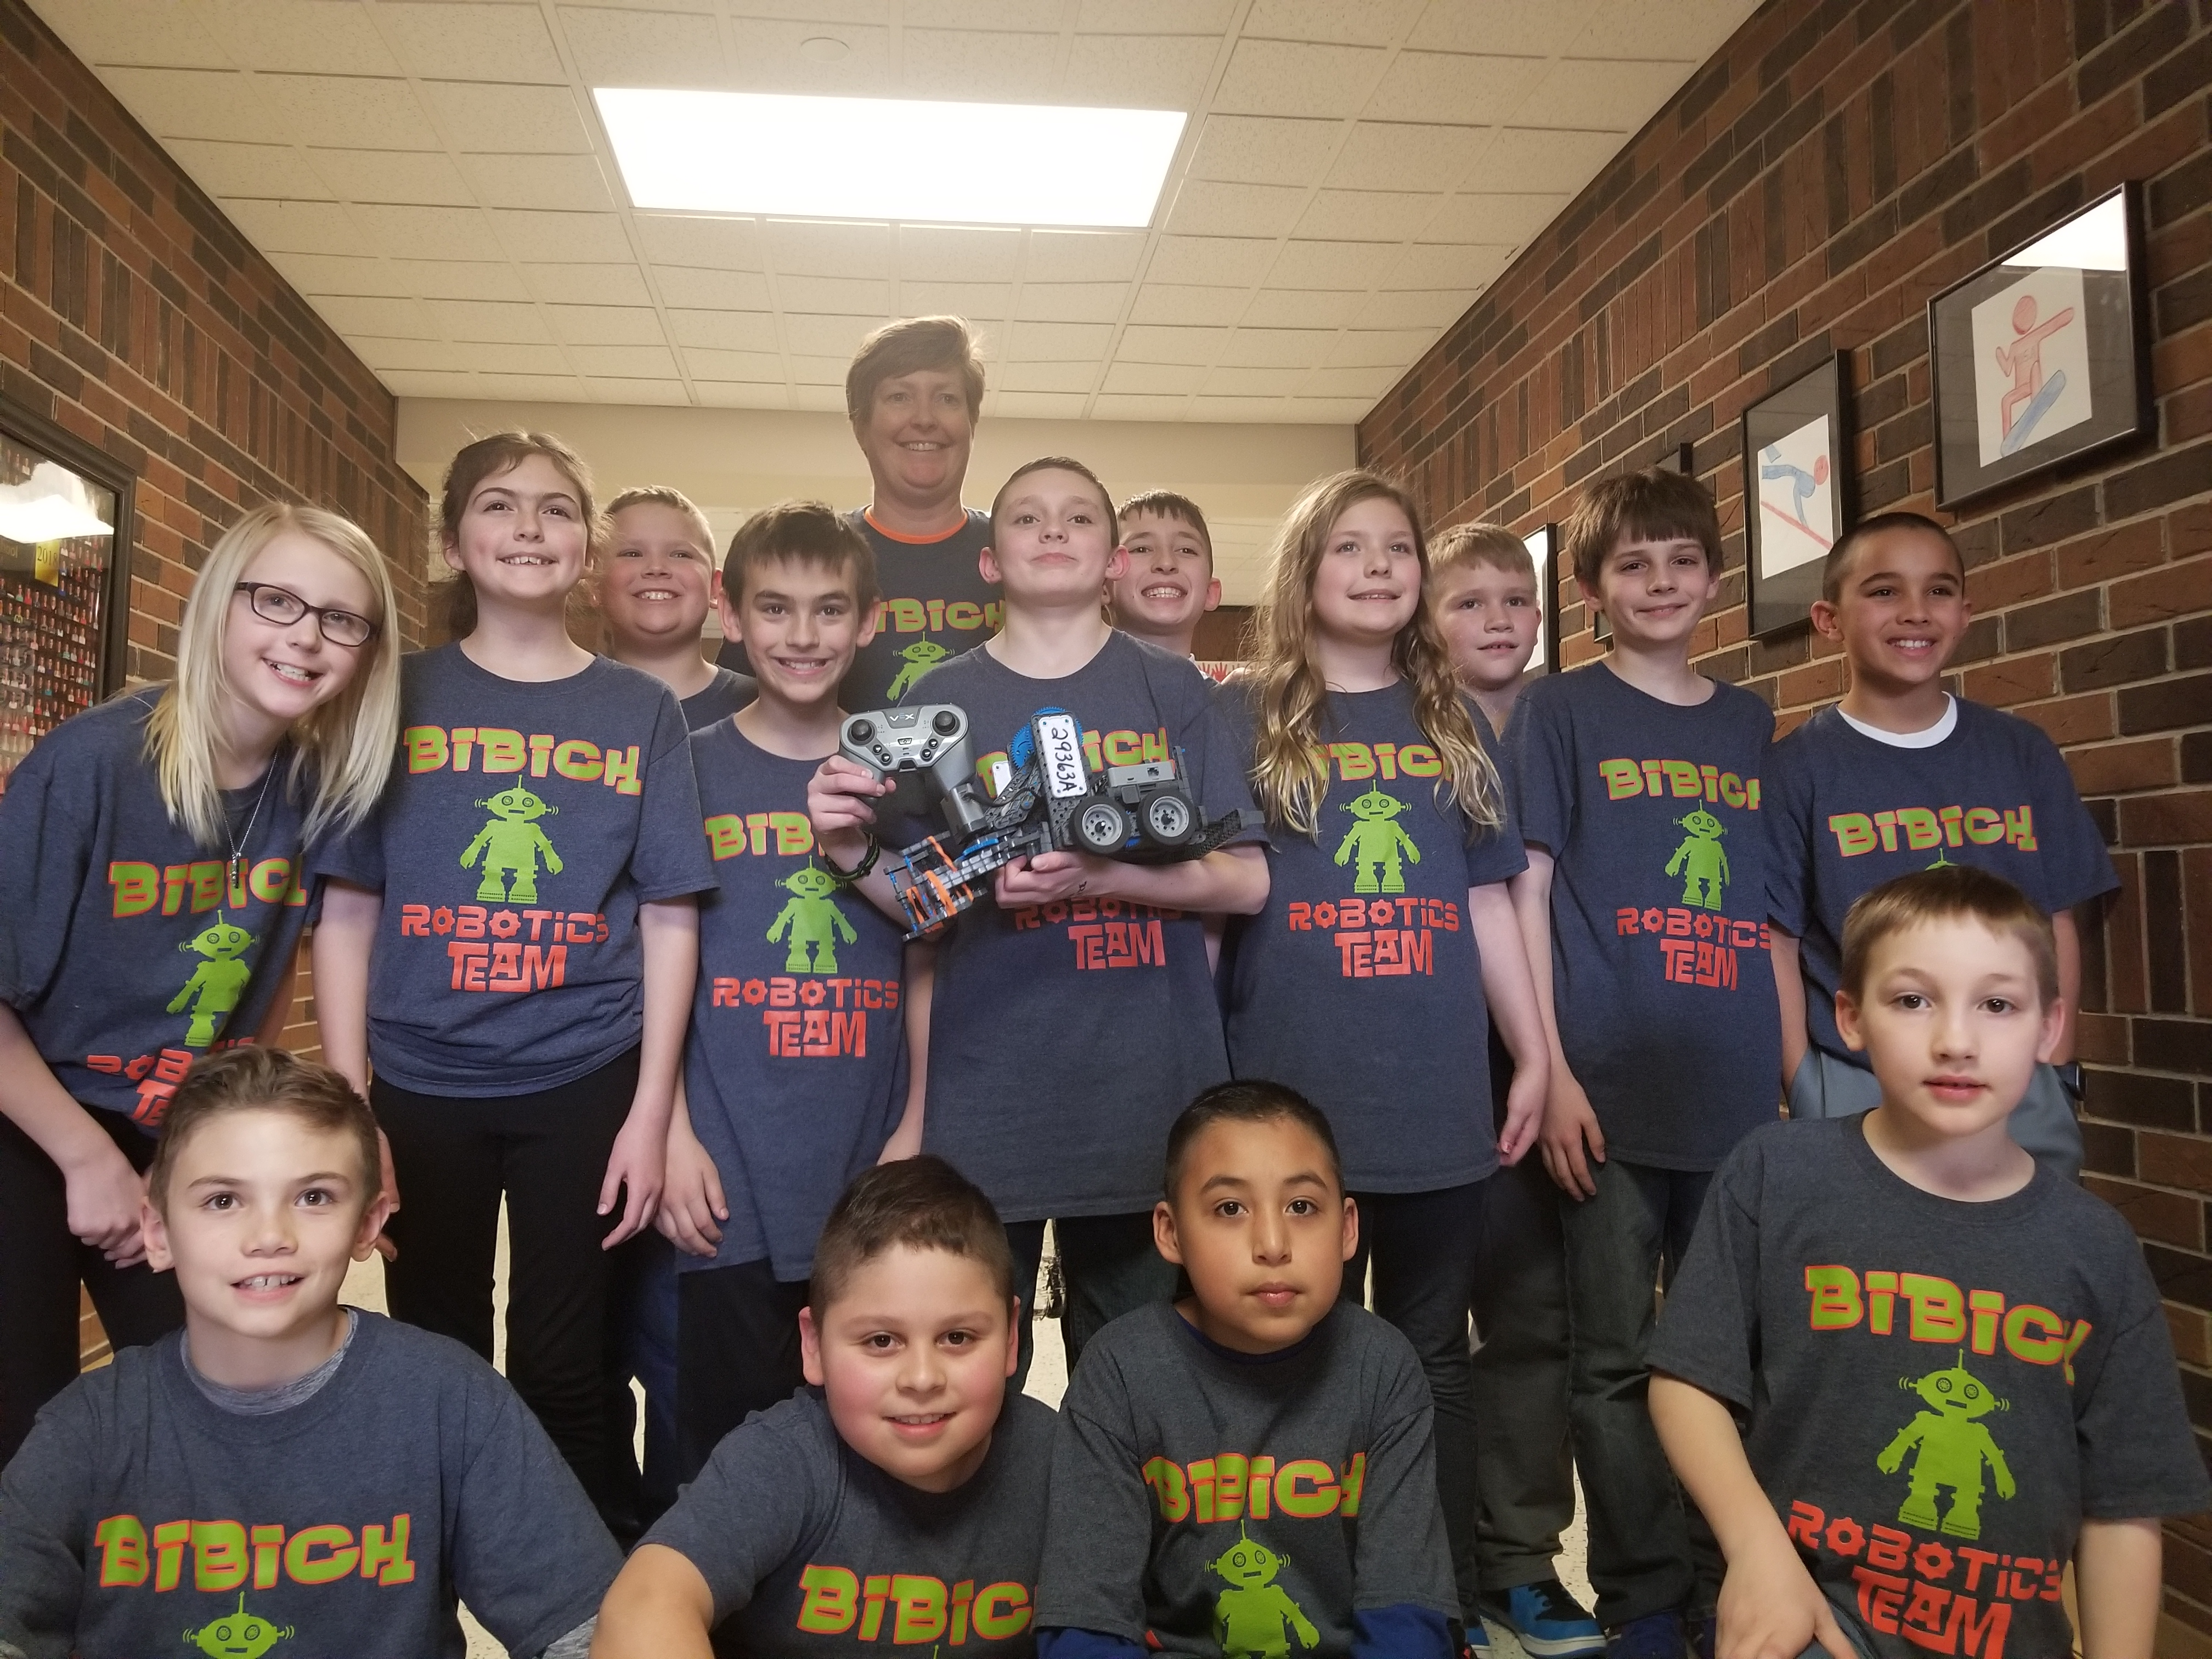 Bibich students, along with Miss Snow, participate in the Robotics Competition.